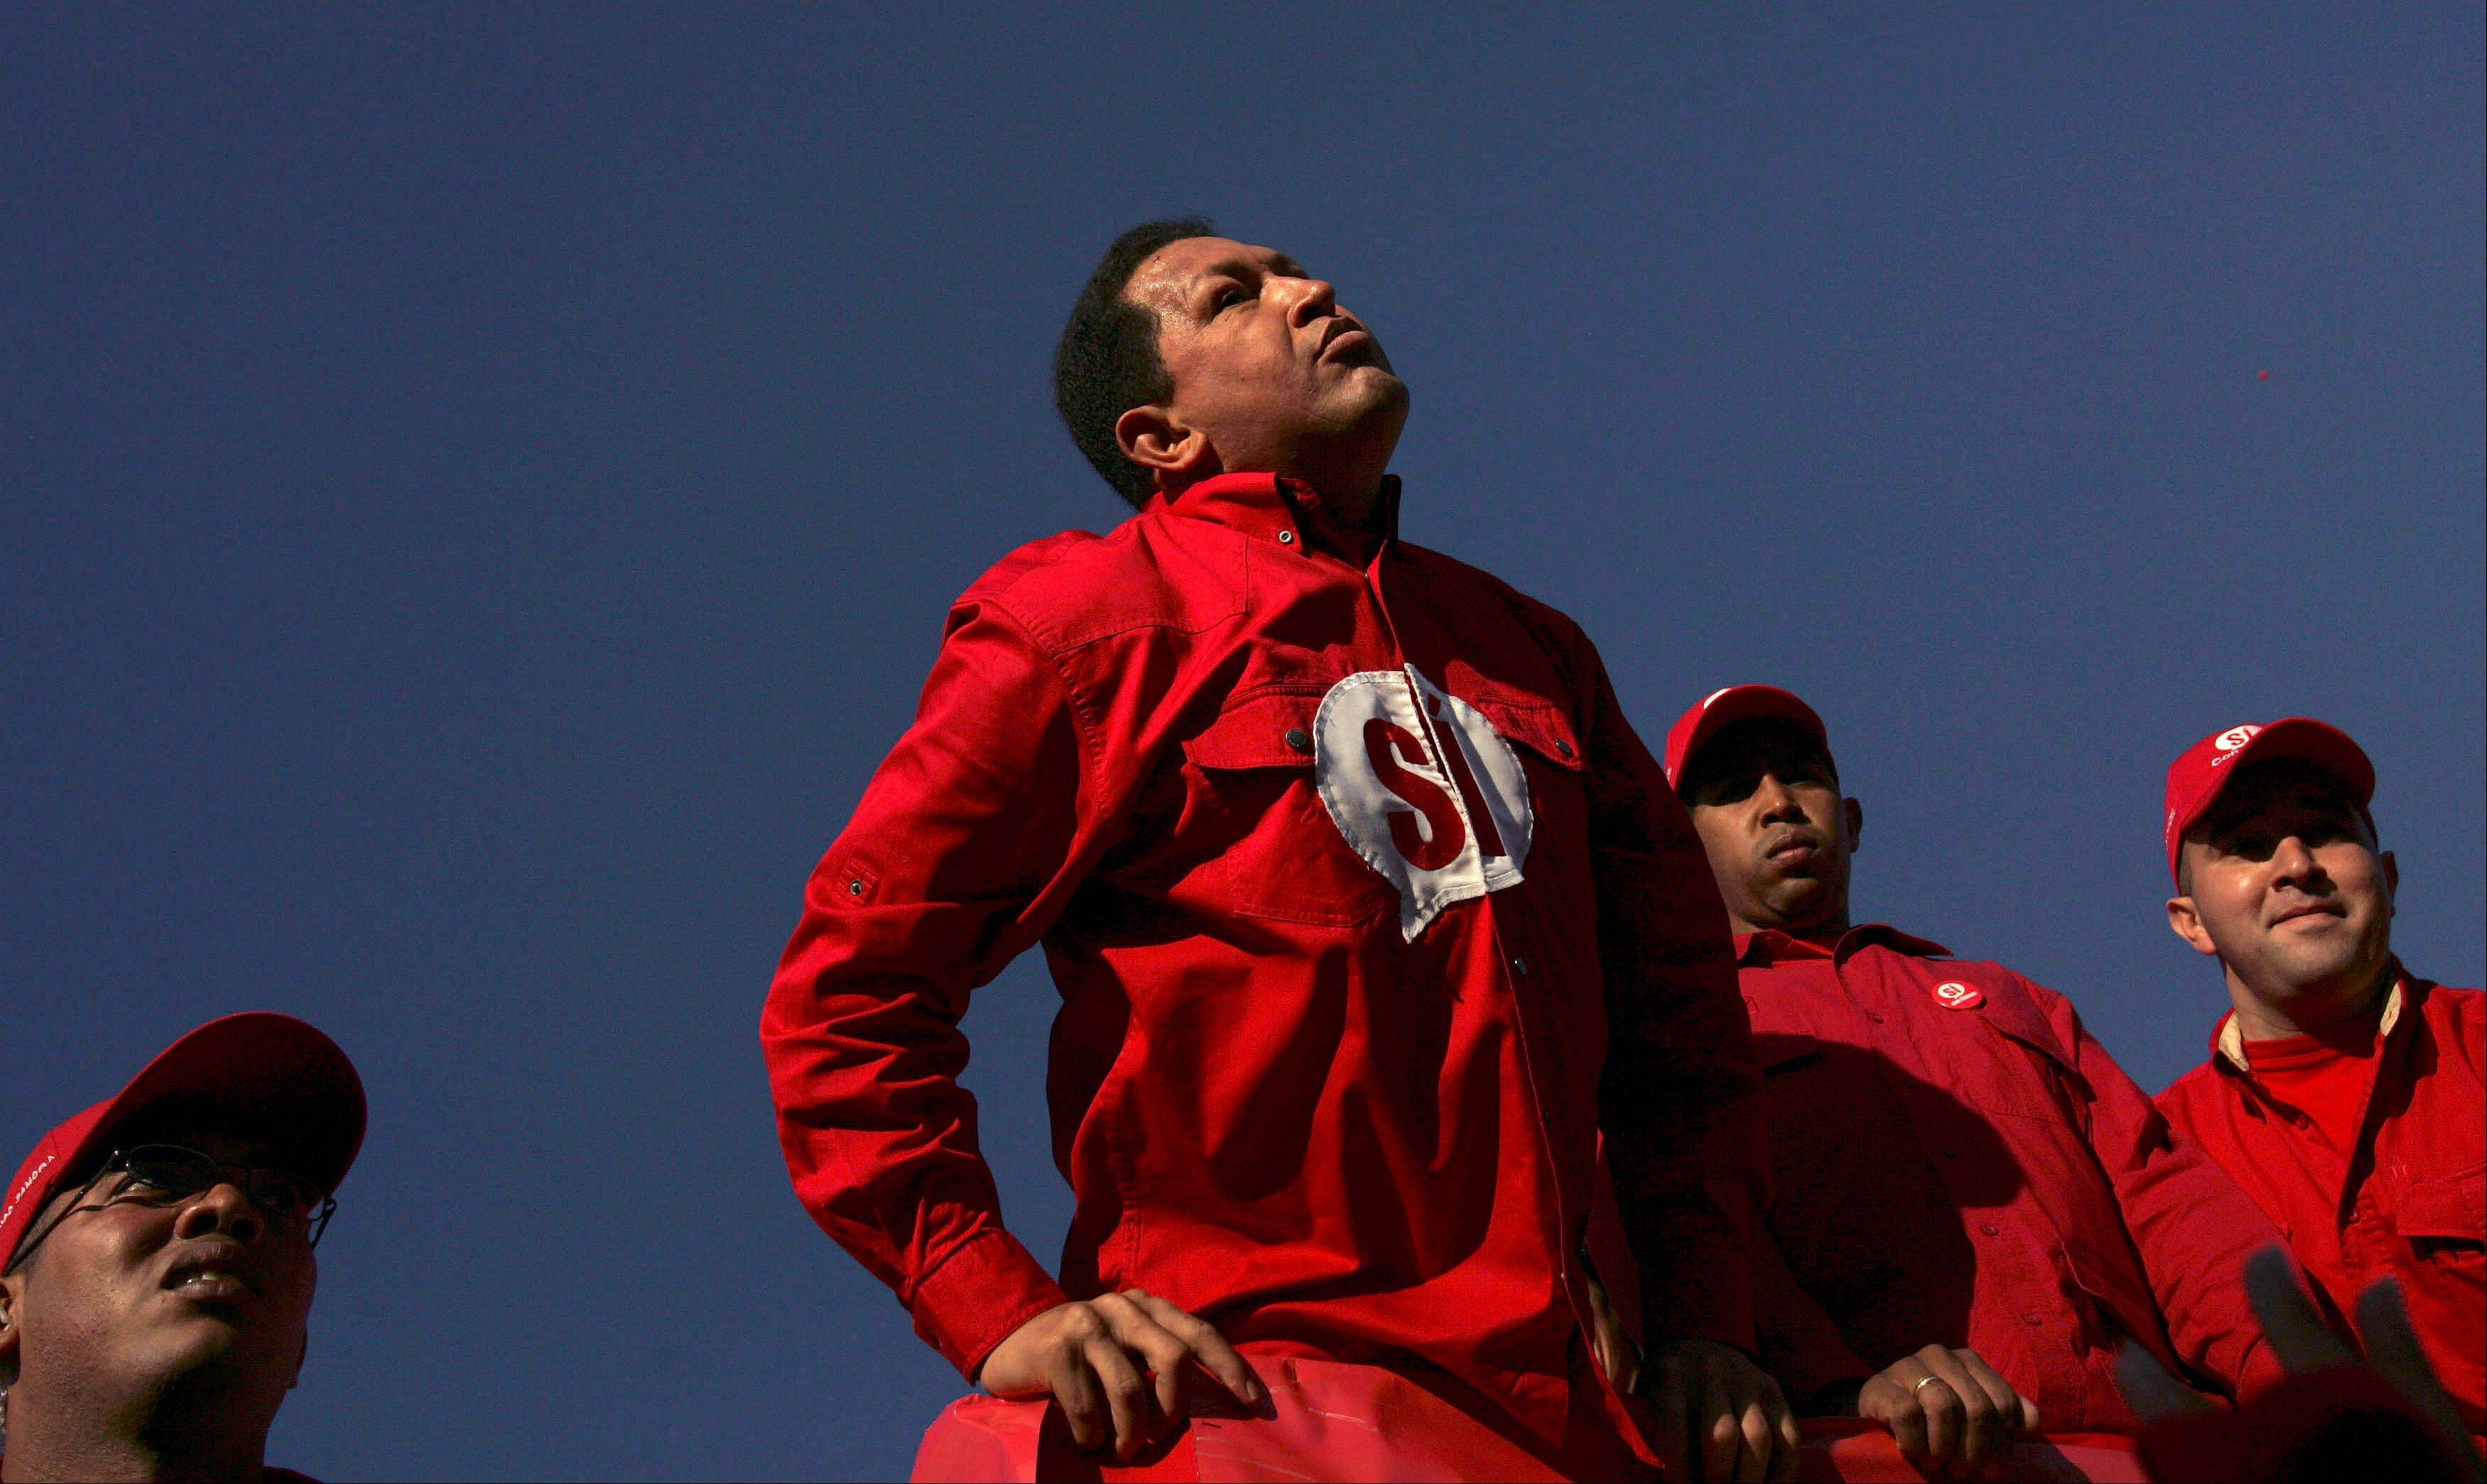 In this Nov. 30, 2007 file photo, Venezuela's President Hugo Chavez arrives to a rally in support of changes to the nation's constitution in Caracas, Venezuela.